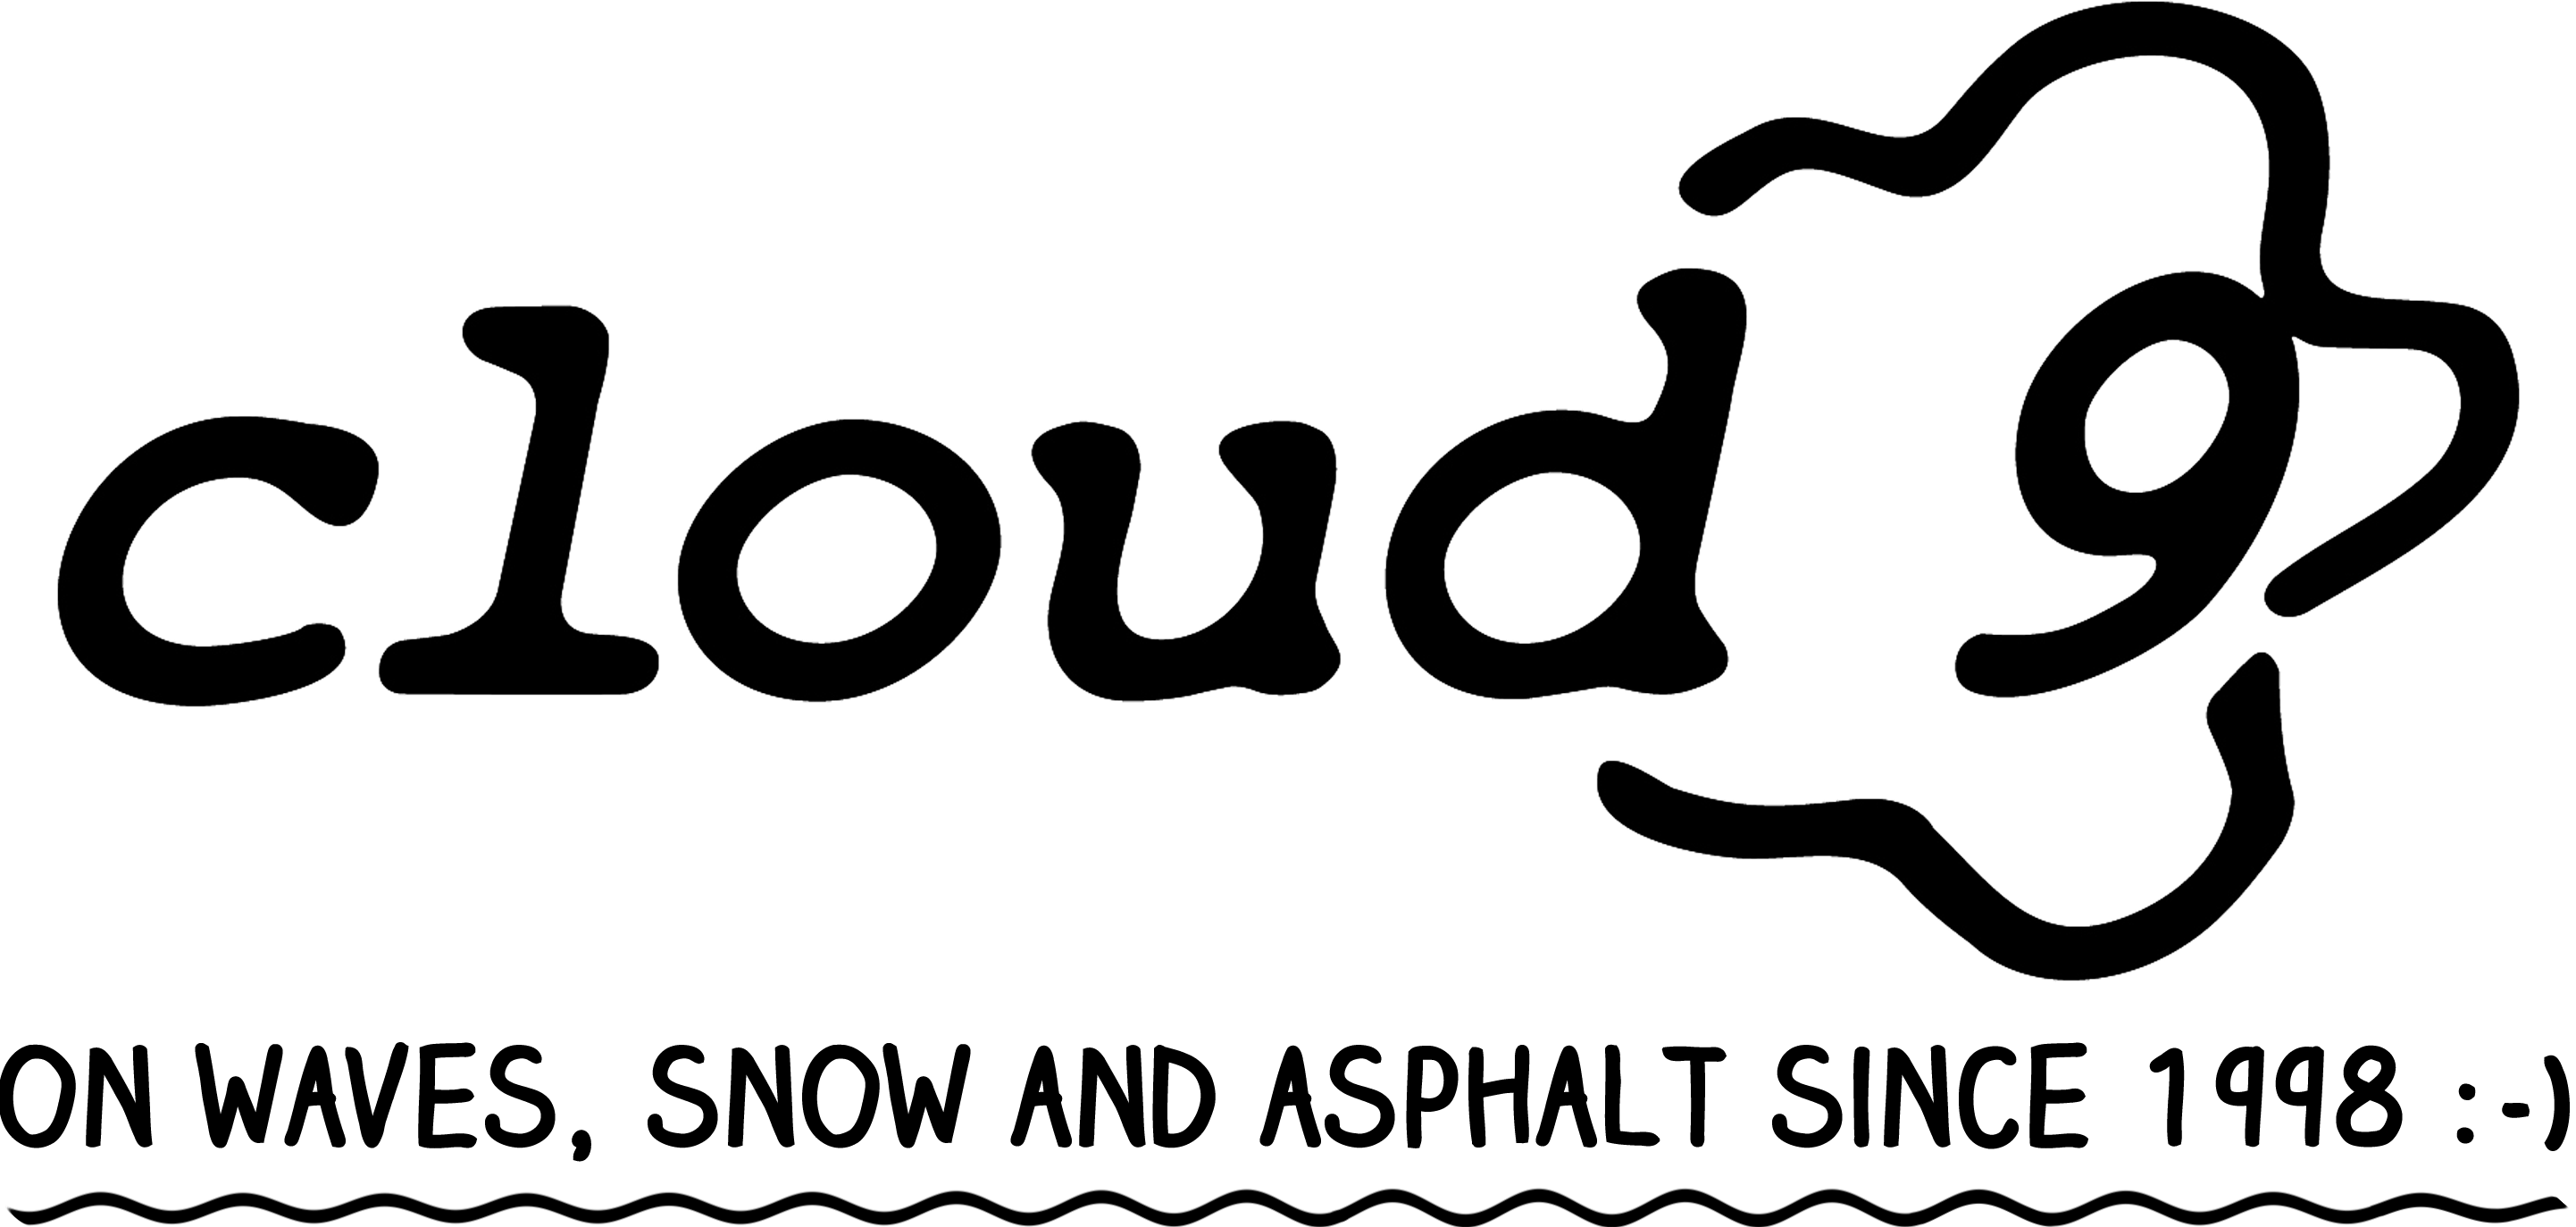 Cloud 9 - SURFSHOP - SUP - BOARDSHOP - SKATESHOP